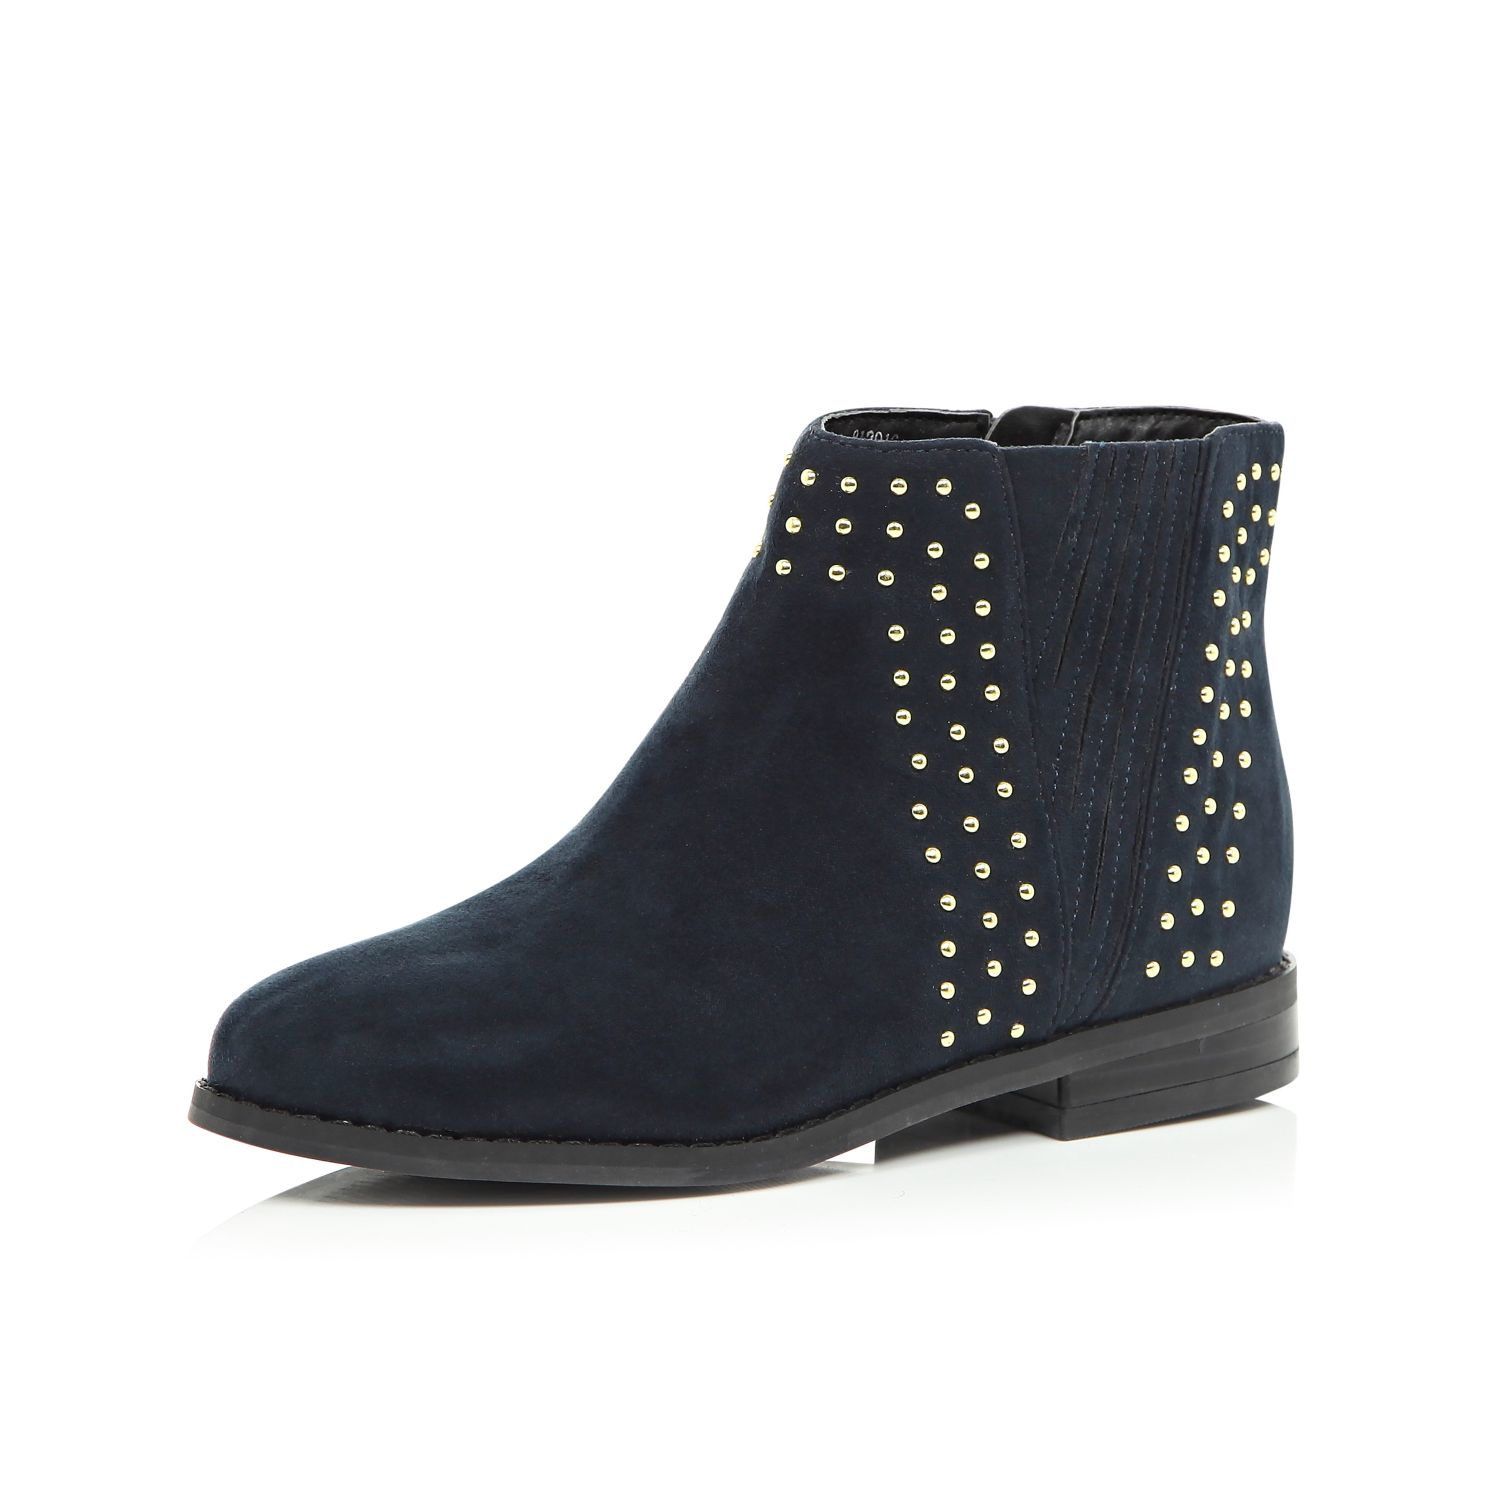 aa37833b1cab River Island Girls Navy Studded Chelsea Boots in Blue - Lyst